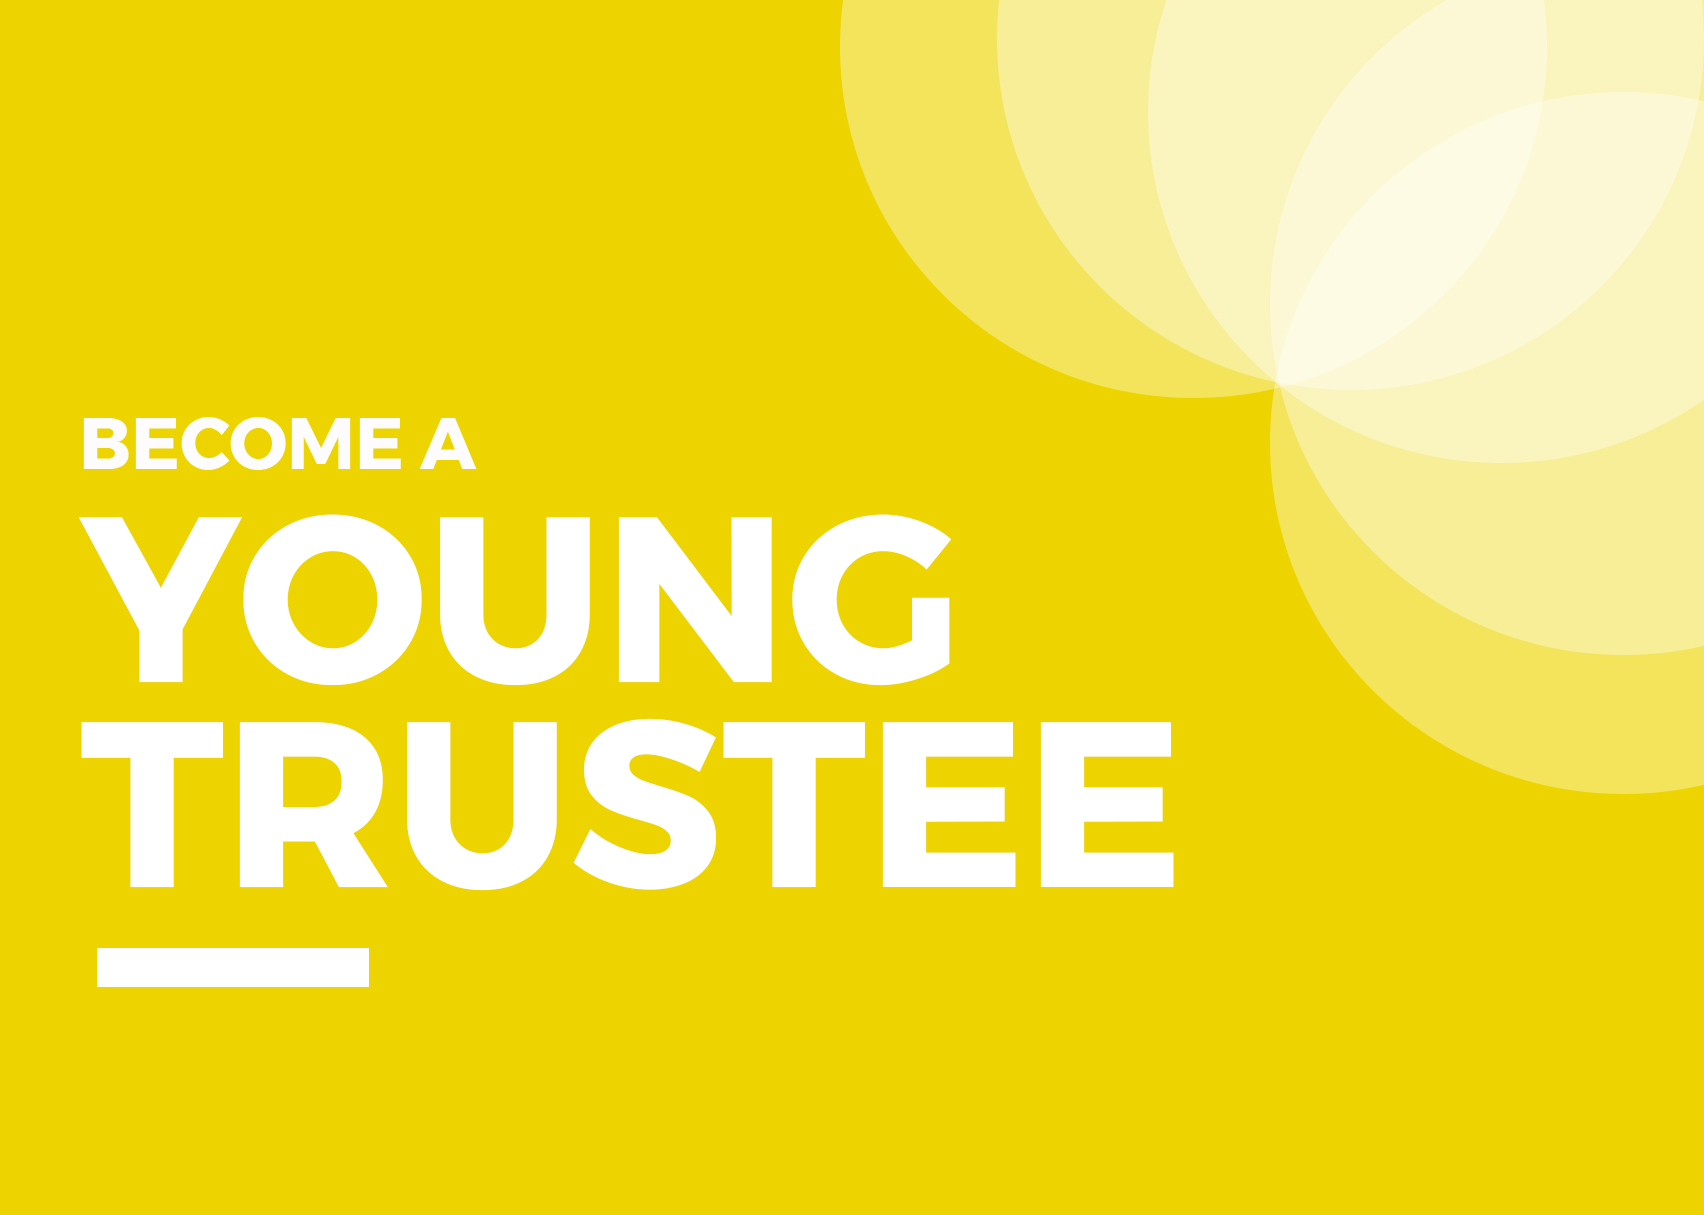 Become a Young Trustee